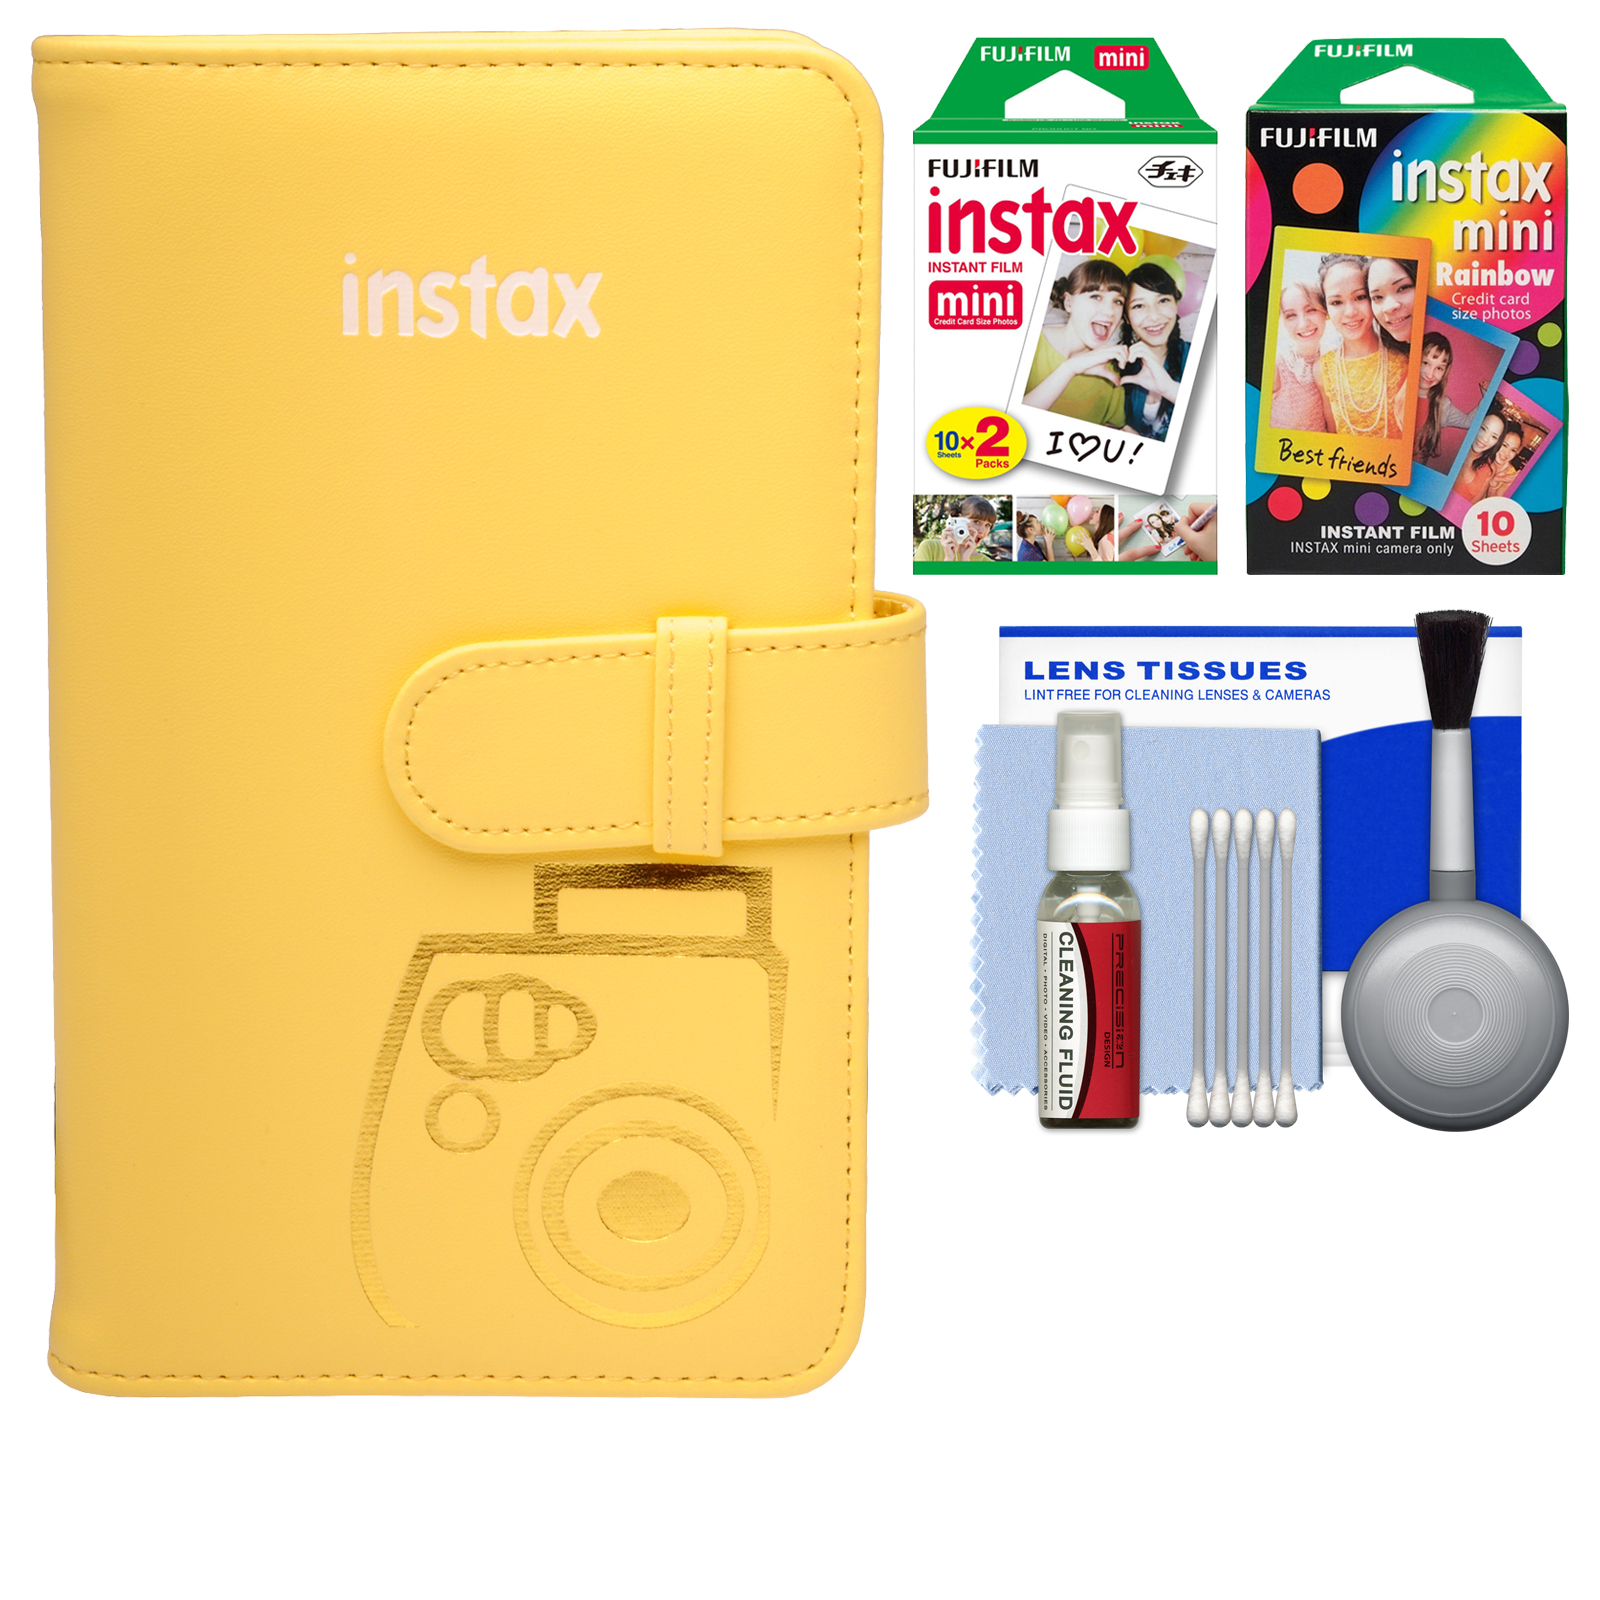 Fujifilm Instax Mini Wallet 108 Photo Album (Yellow) with 20 Color Prints & 10 Rainbow Prints   Kit for 7S, 8, 25, 50S, 90 Cameras